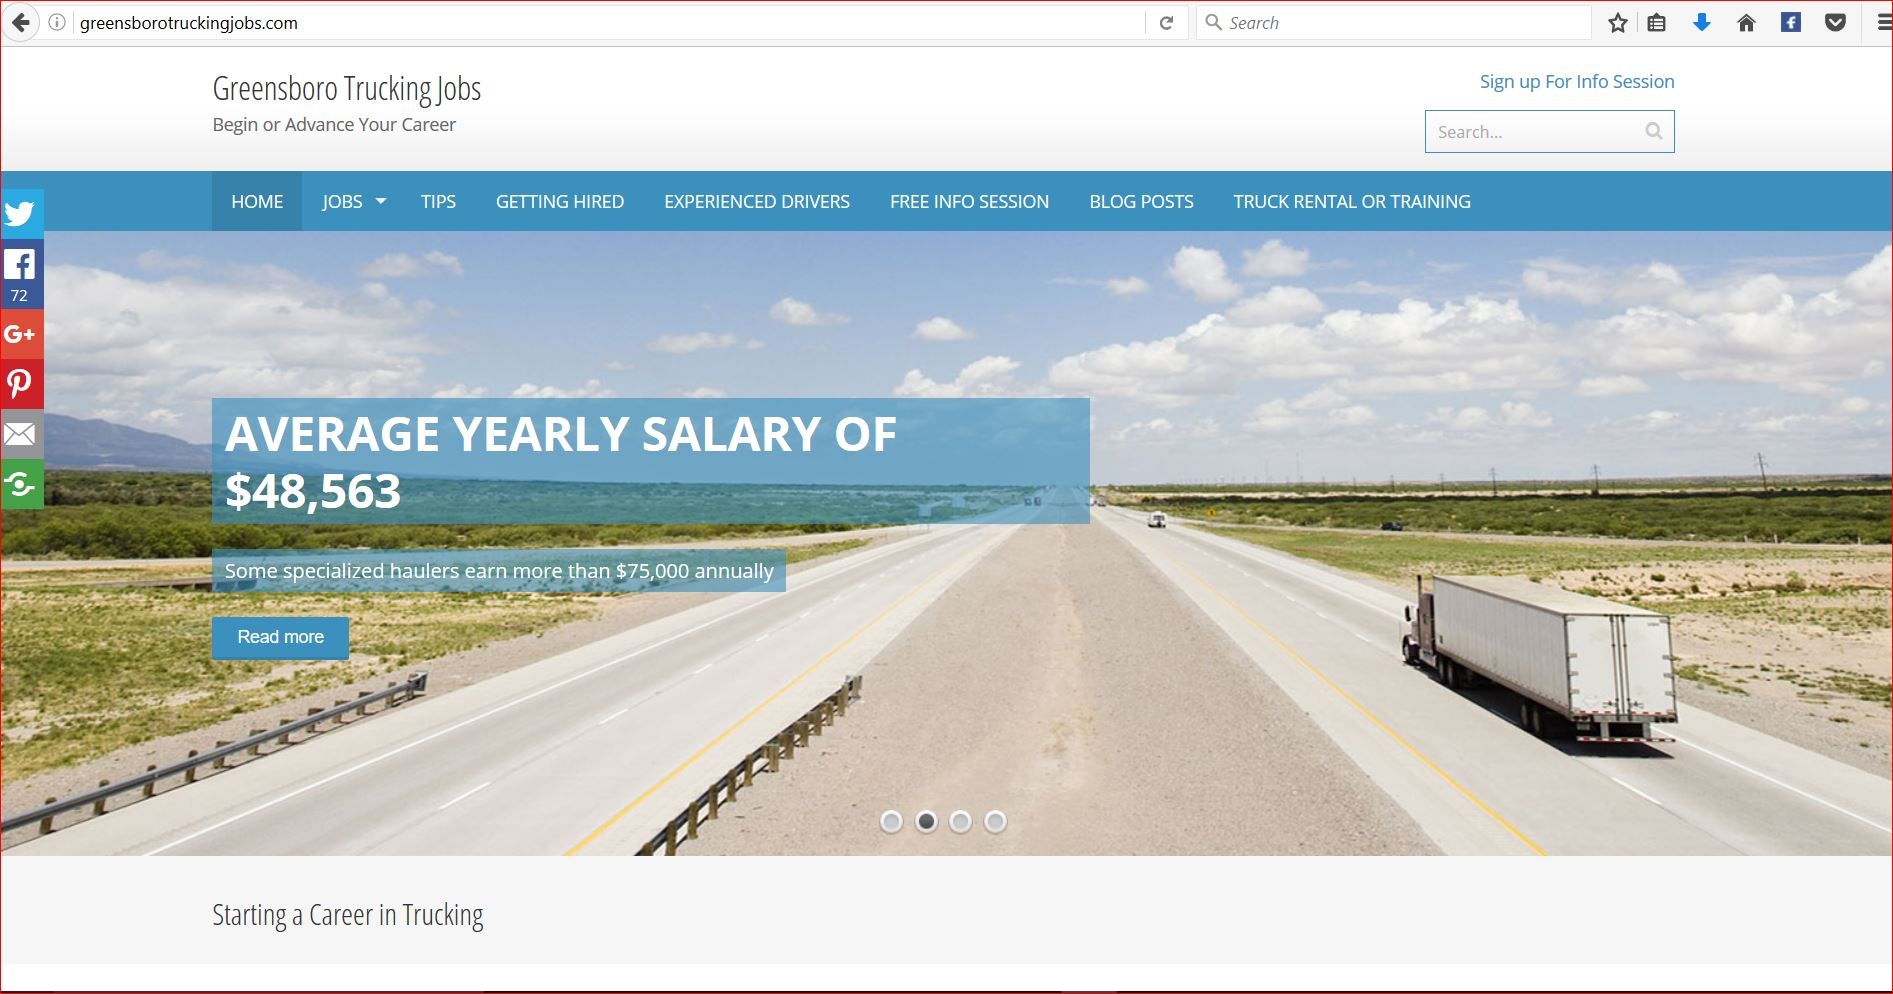 Greensboro Trucking Jobs Website